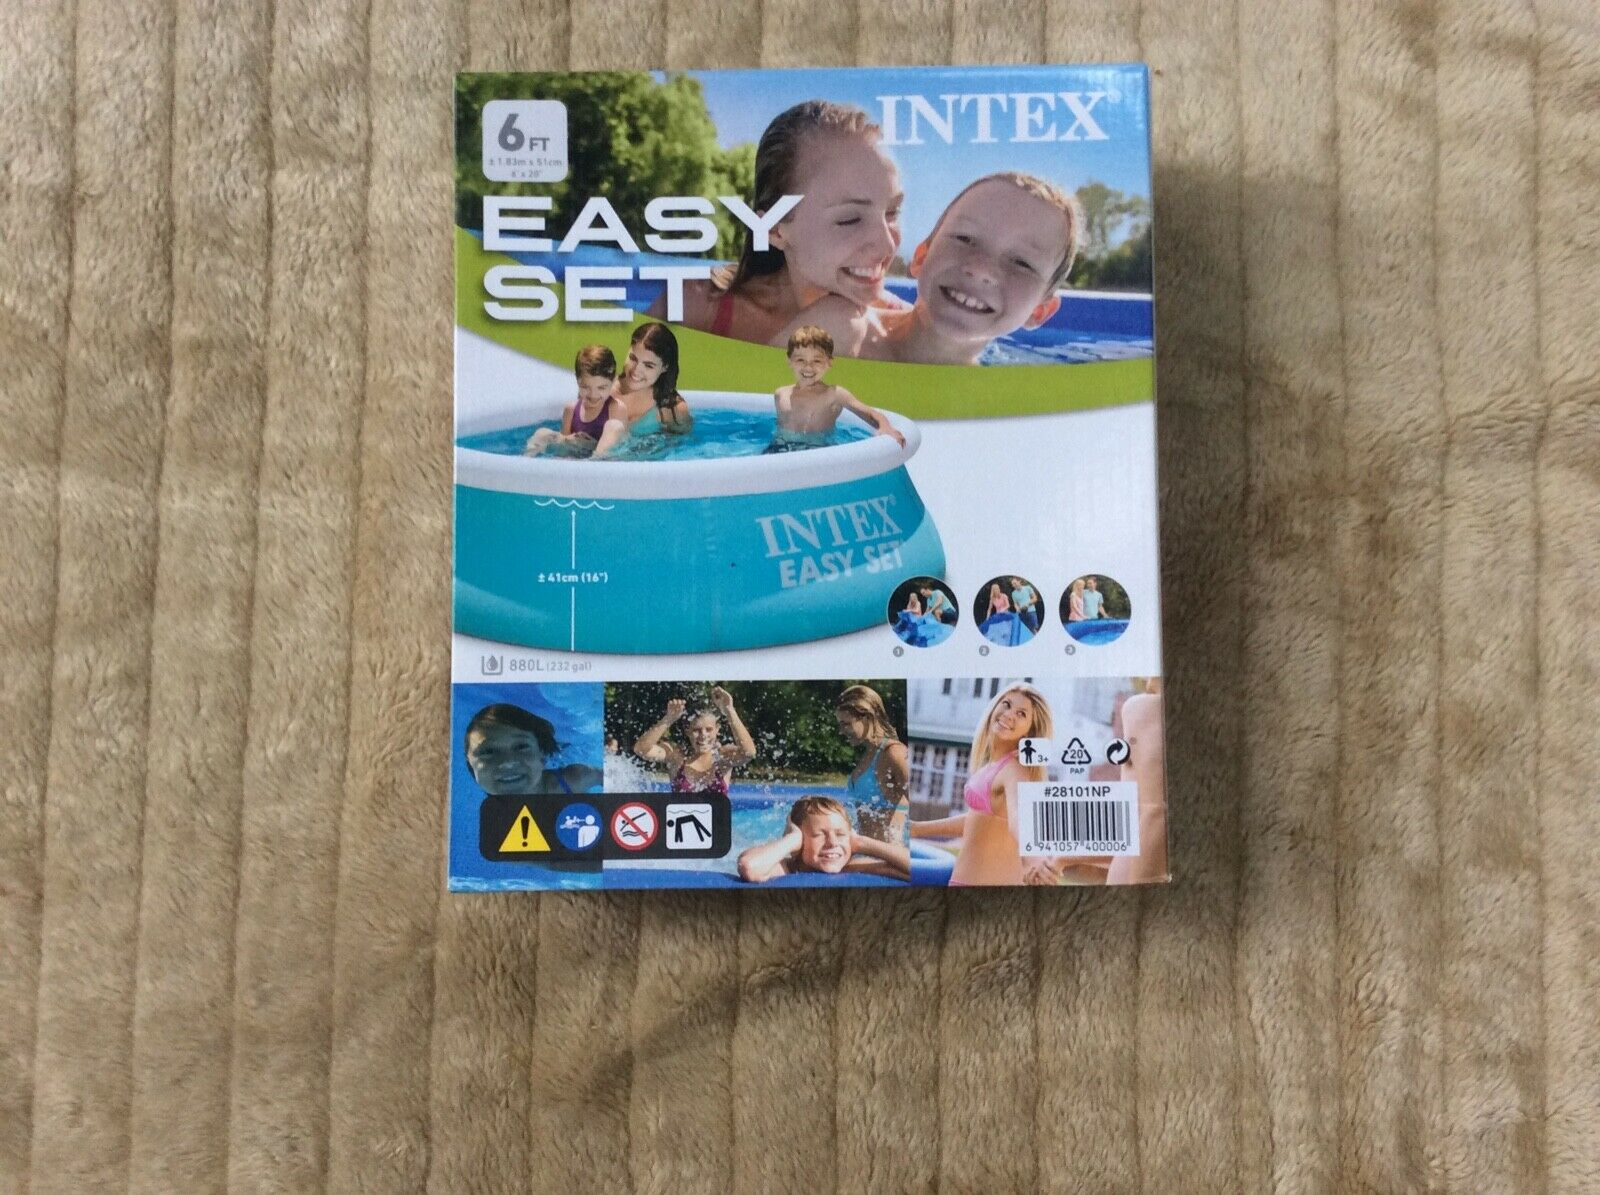 Intex Kystal Clear Pool Cover 2.21 m. Brand New In Box